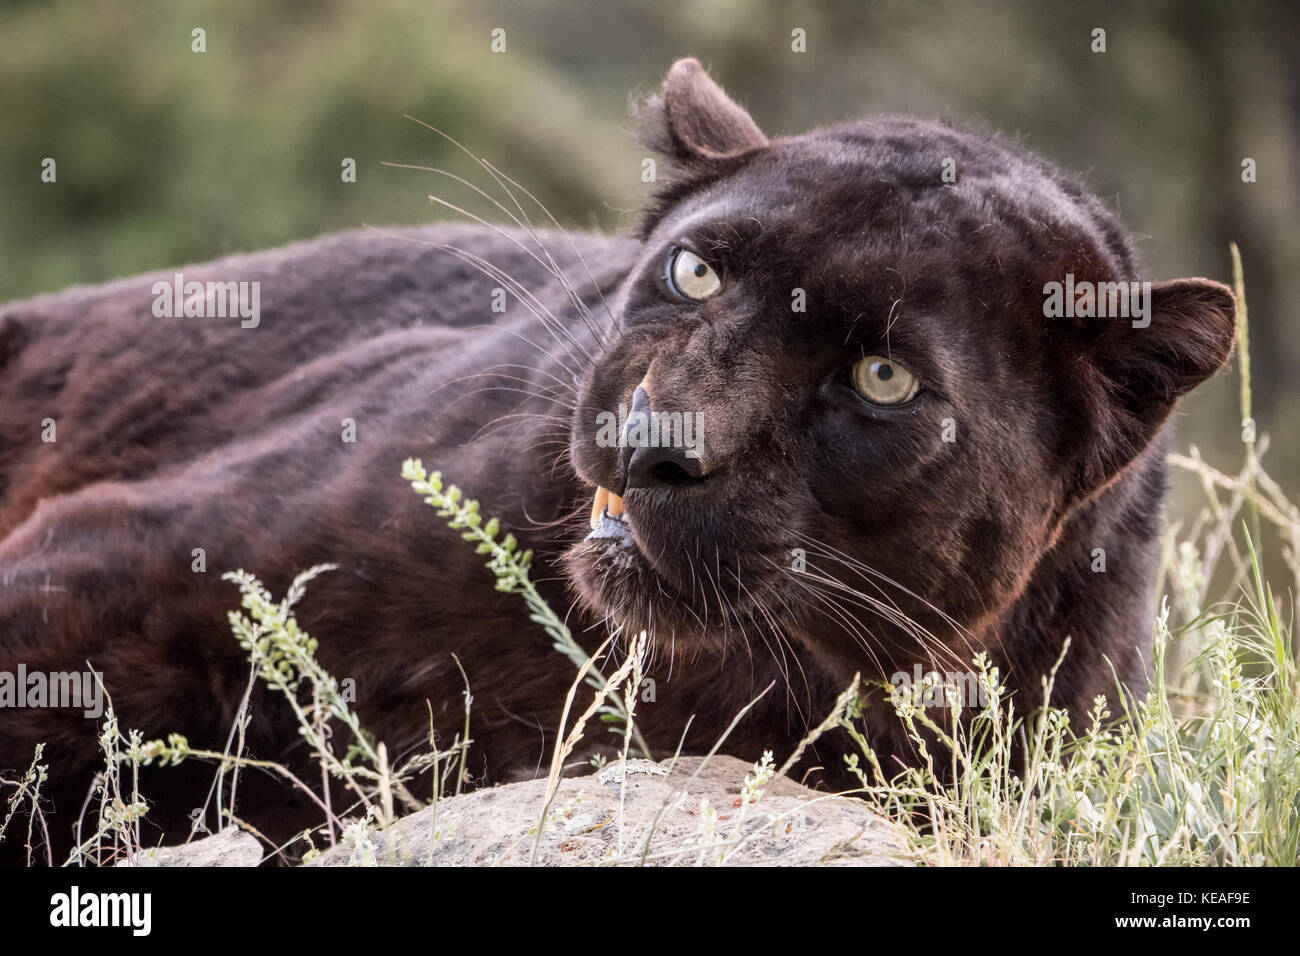 Black panther snarling a warning near Bozeman, Montana, USA.  A black panther in the Americas is the melanistic - Stock Image